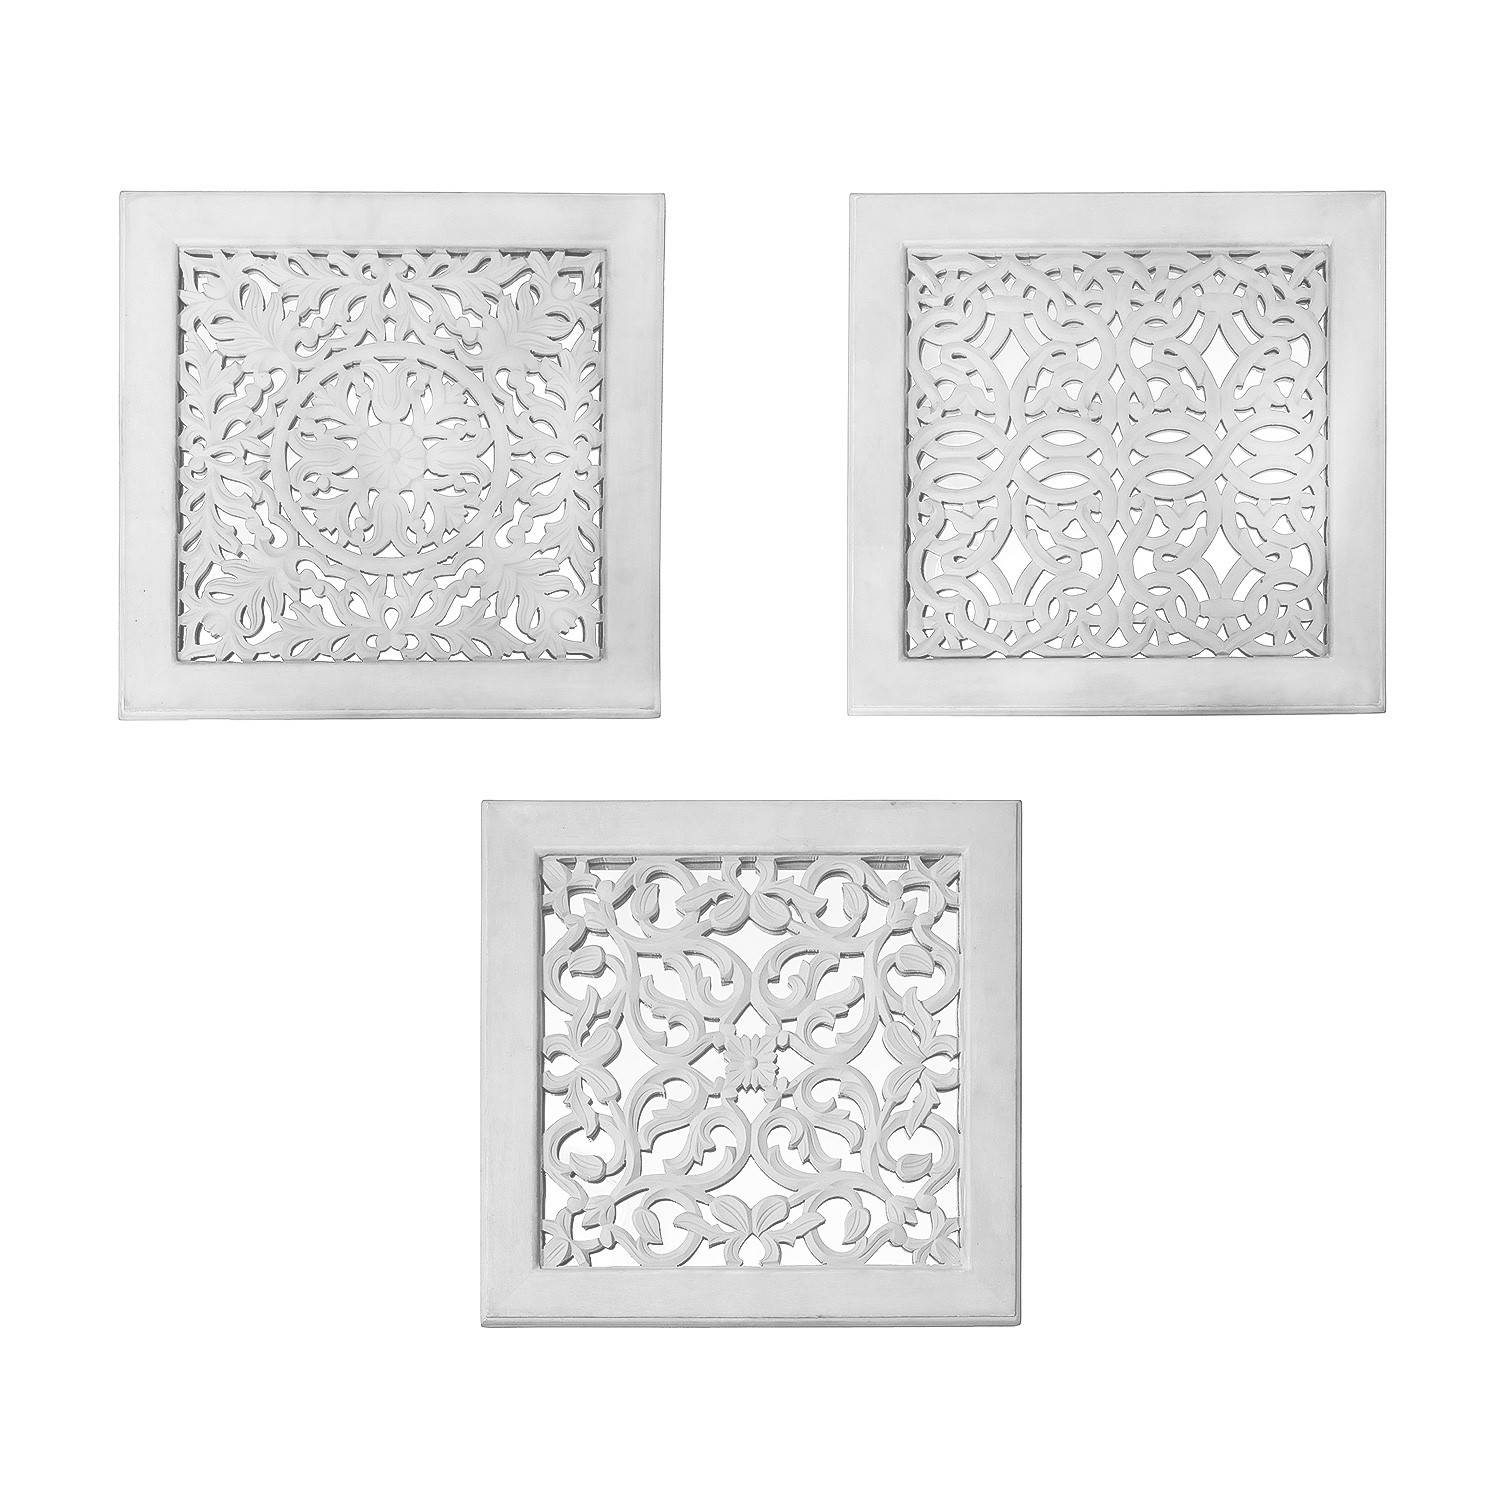 Fretwork Wall Art: White (Set Of 3) | The Yellow Door Store With Regard To 2017 Fretwork Wall Art (View 13 of 25)